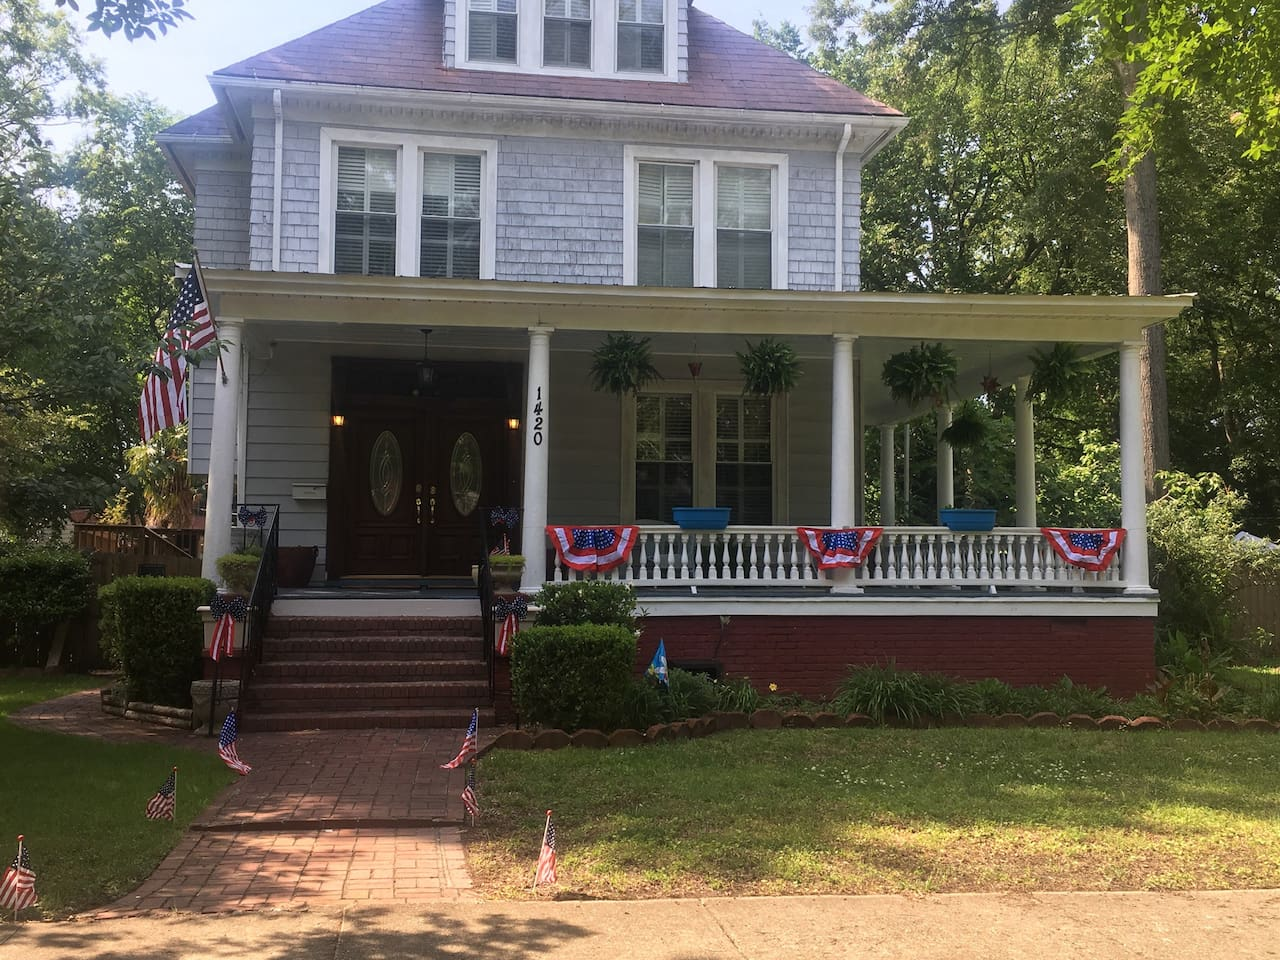 Charming 5 Bedroom historic home in Historic Lafayette neighborhood. Tranquility and access to the Festival!